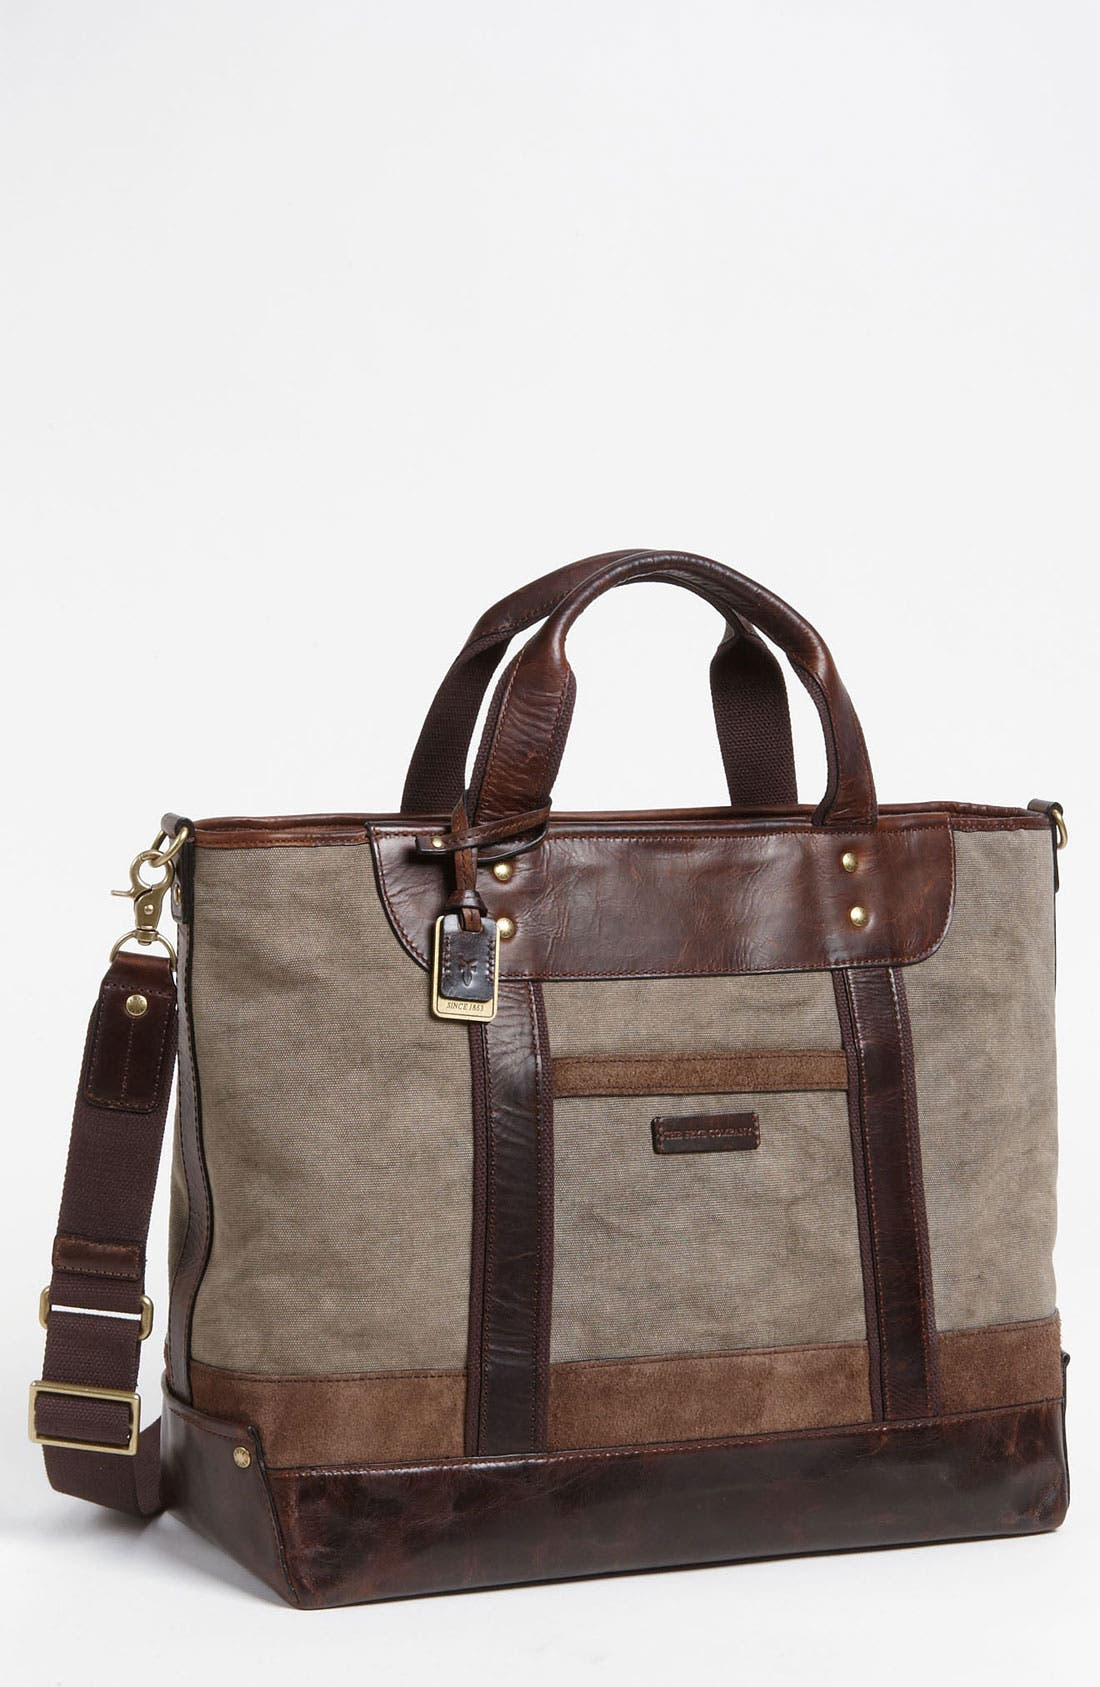 Alternate Image 1 Selected - Frye 'Harvey' Tote Bag